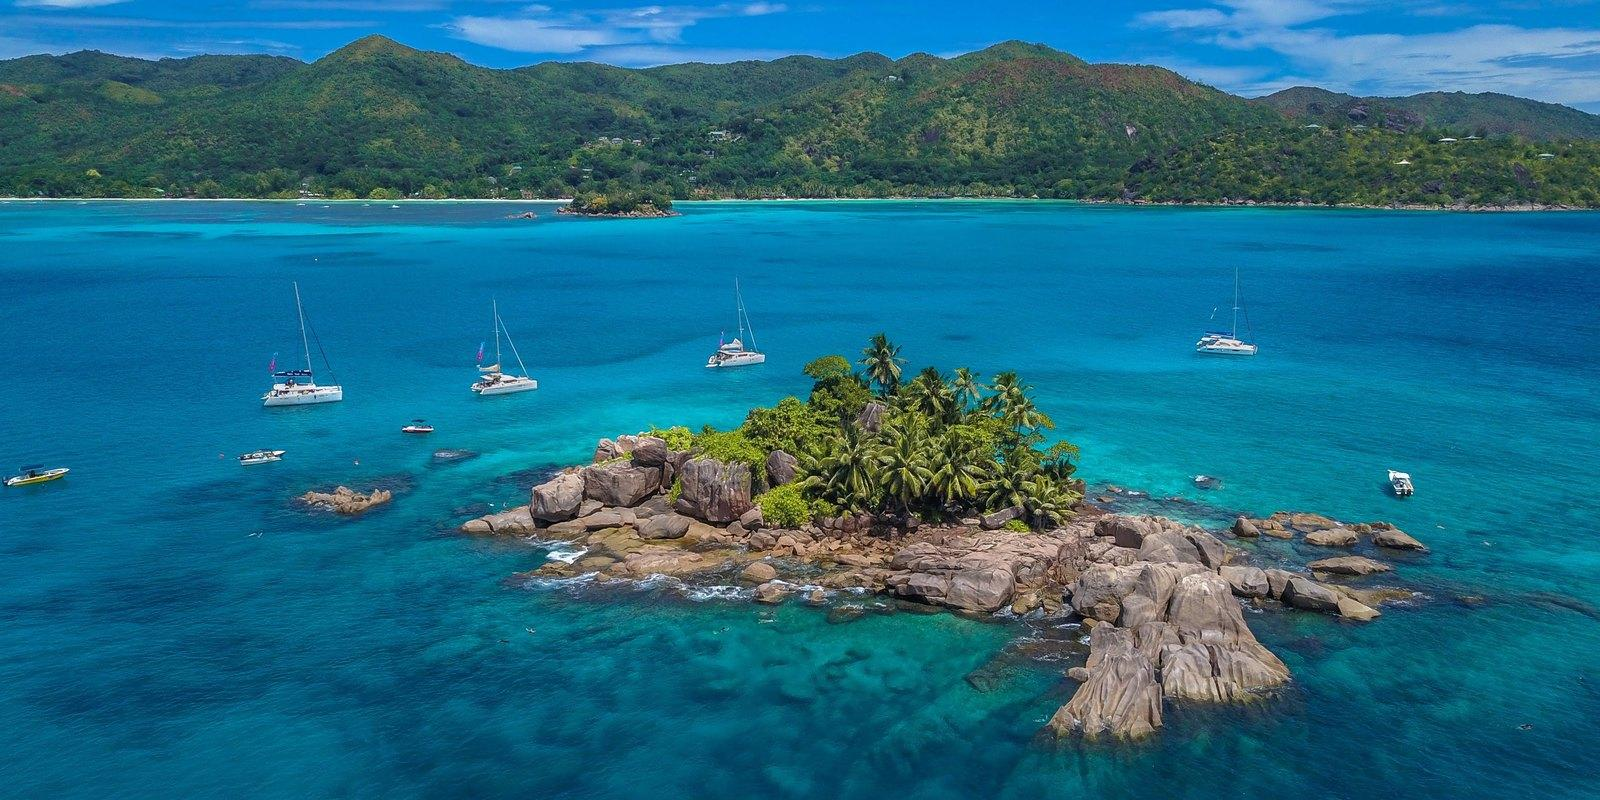 Premium Cruise 11 days on a Catamaran with hostess to the Seychelles - All Inclusive